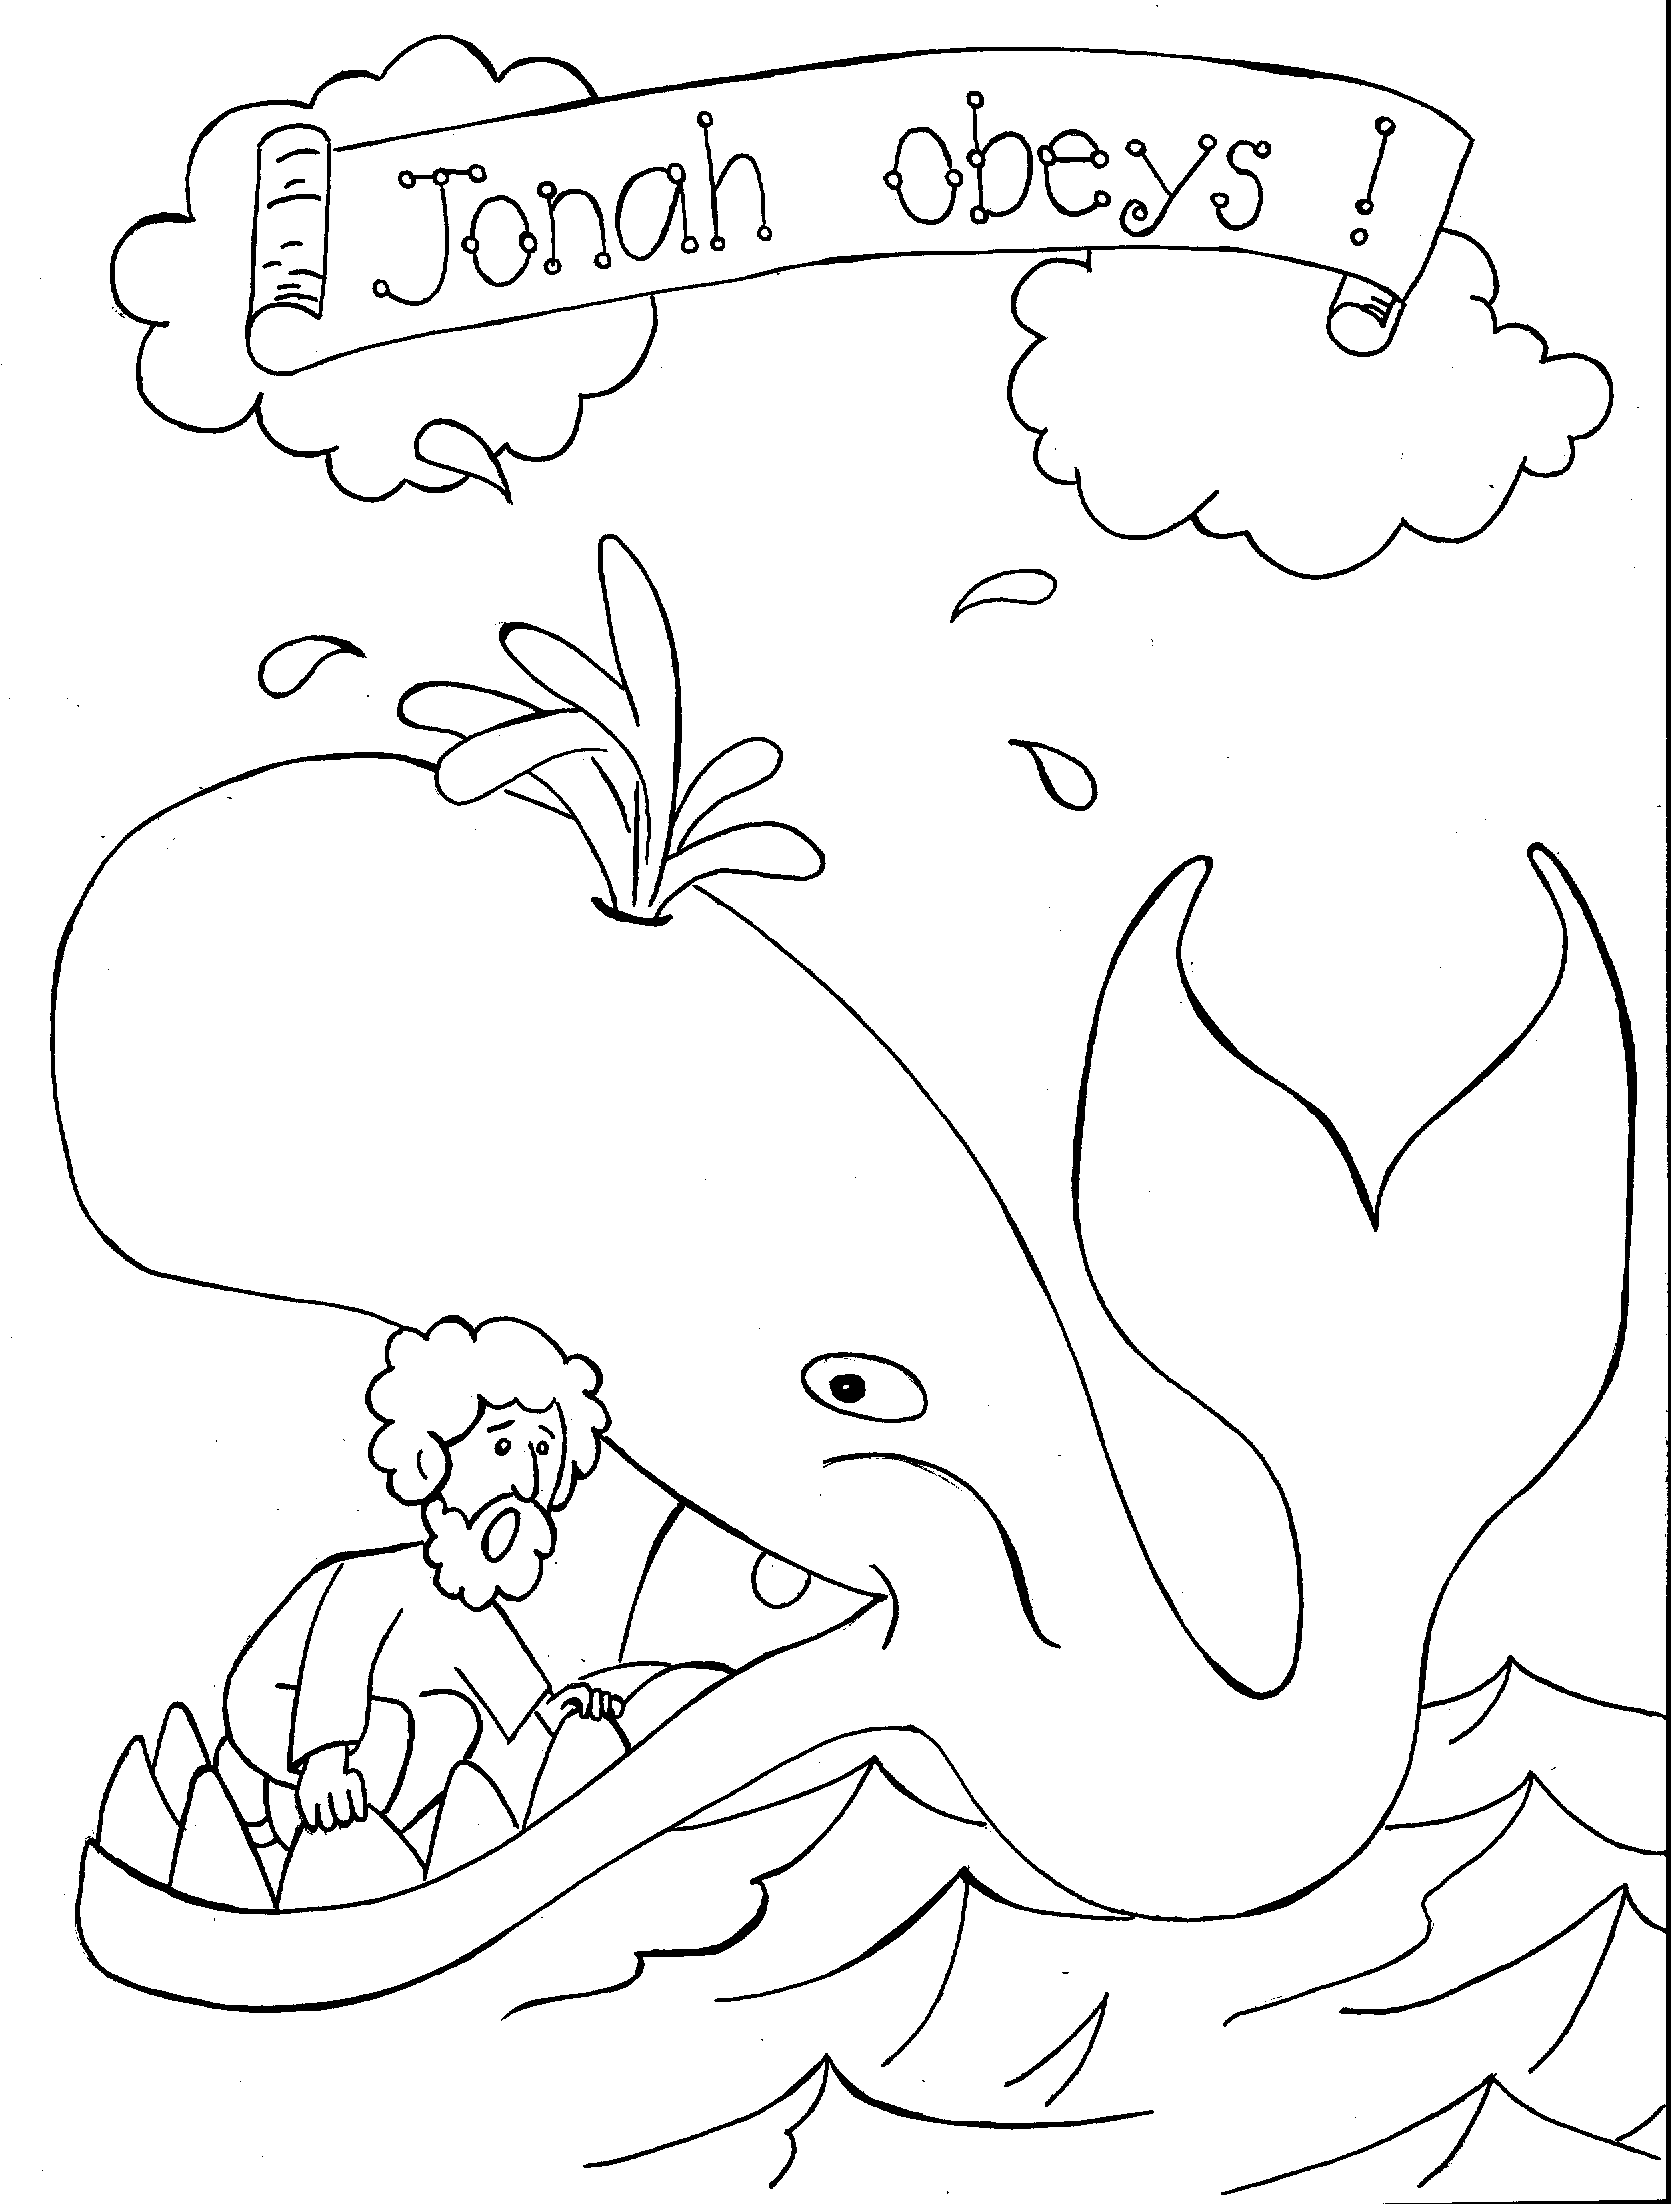 Jonah and the whale bible story coloring pages coloring home for Bible story coloring pages printable